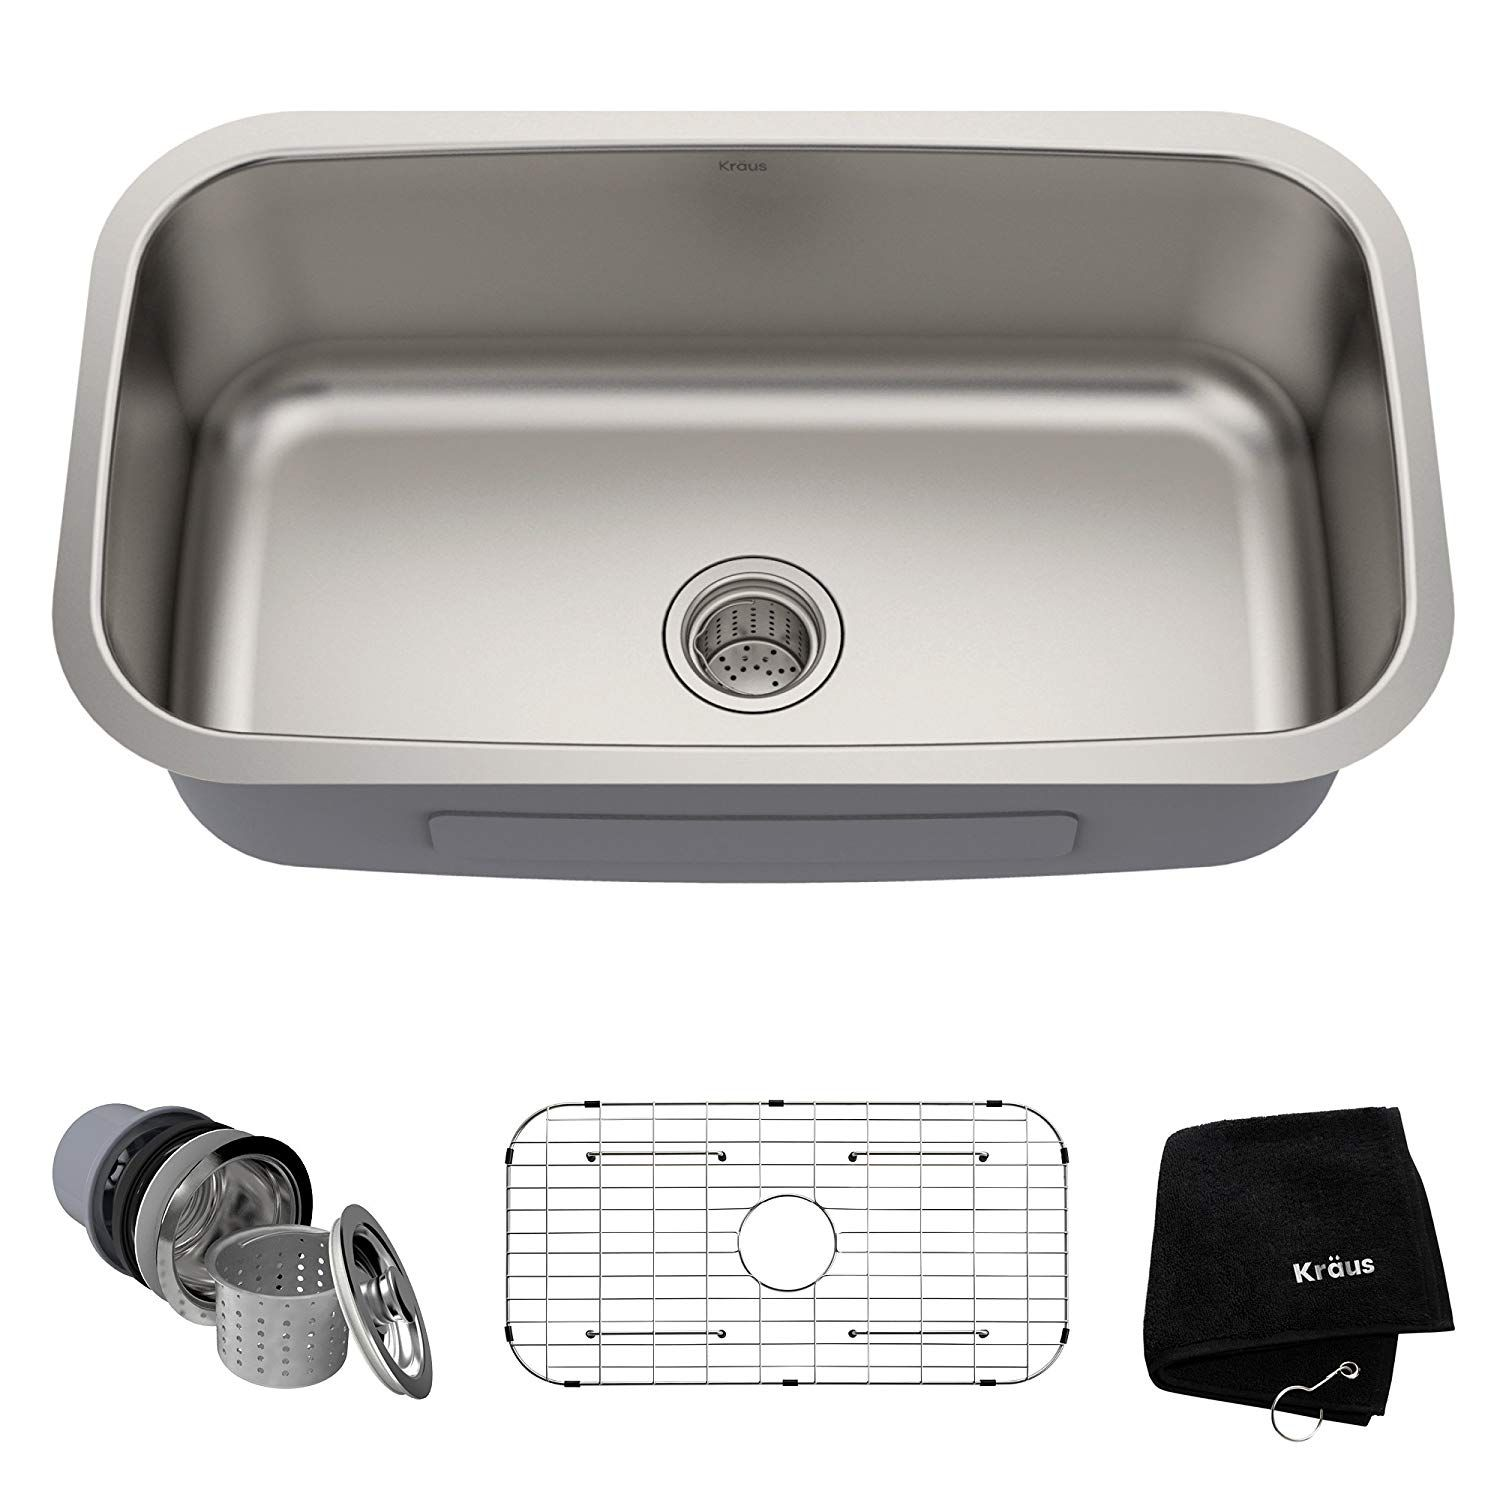 Kraus Kbu14 31 1 2 Inch Undermount Single Bowl 16 Gauge Stainless Steel Kitchen Sink You Can Get More Detail Stainless Steel Kitchen Sink Steel Kitchen Sink